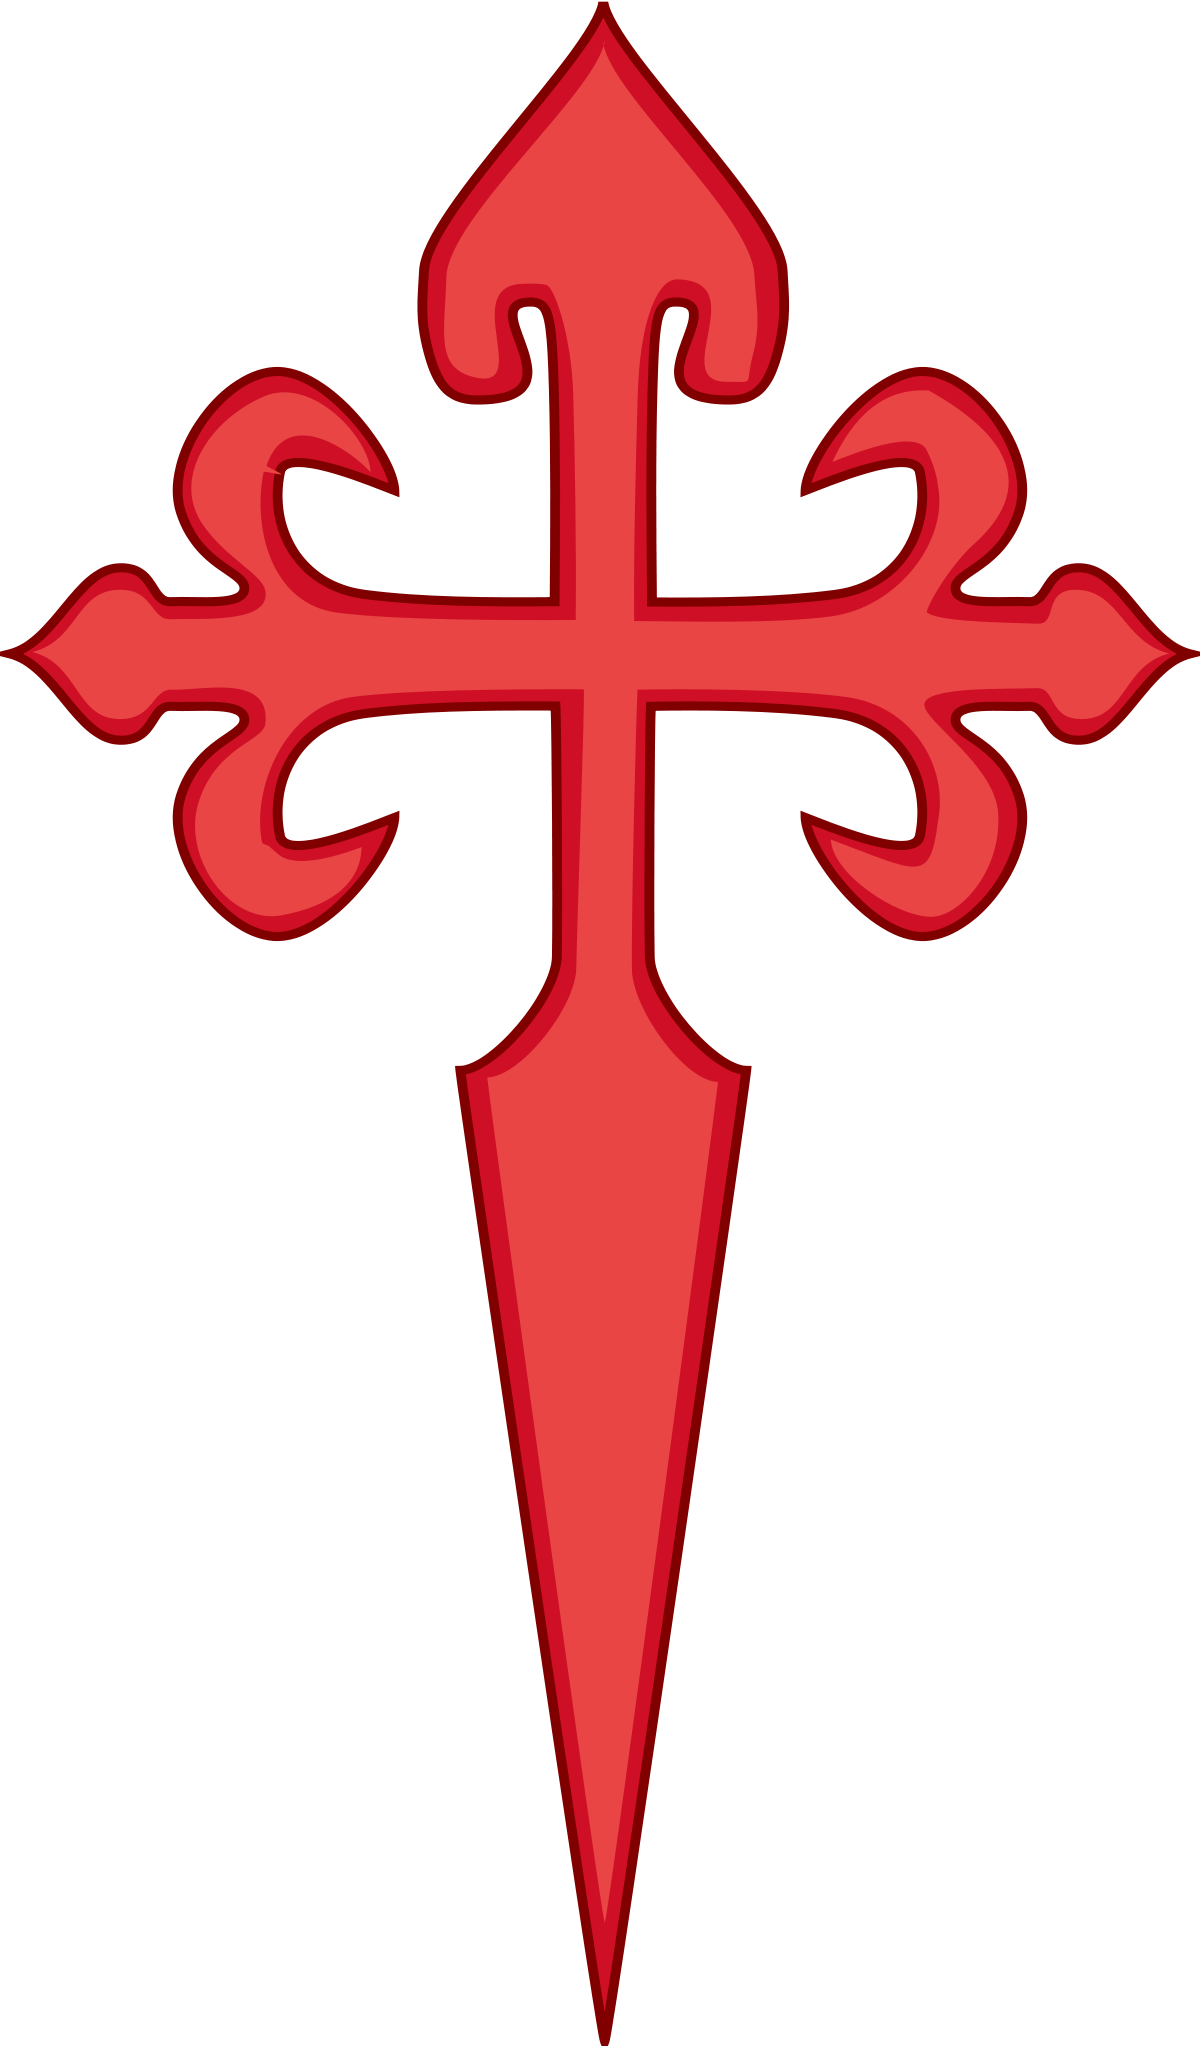 Field cross clipart image royalty free Santiago cross clipart - Clipground image royalty free